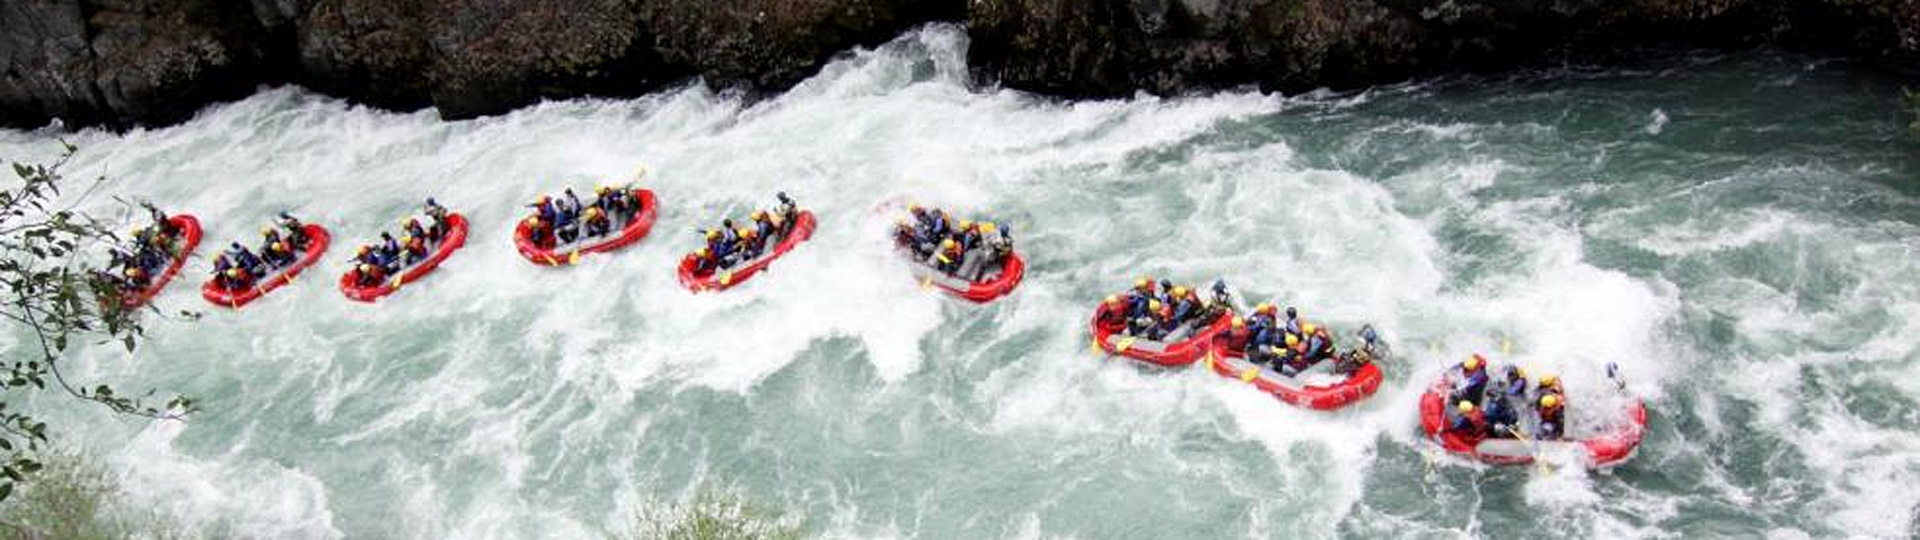 Extremo Sur - Rafting Course for Rafting Guide